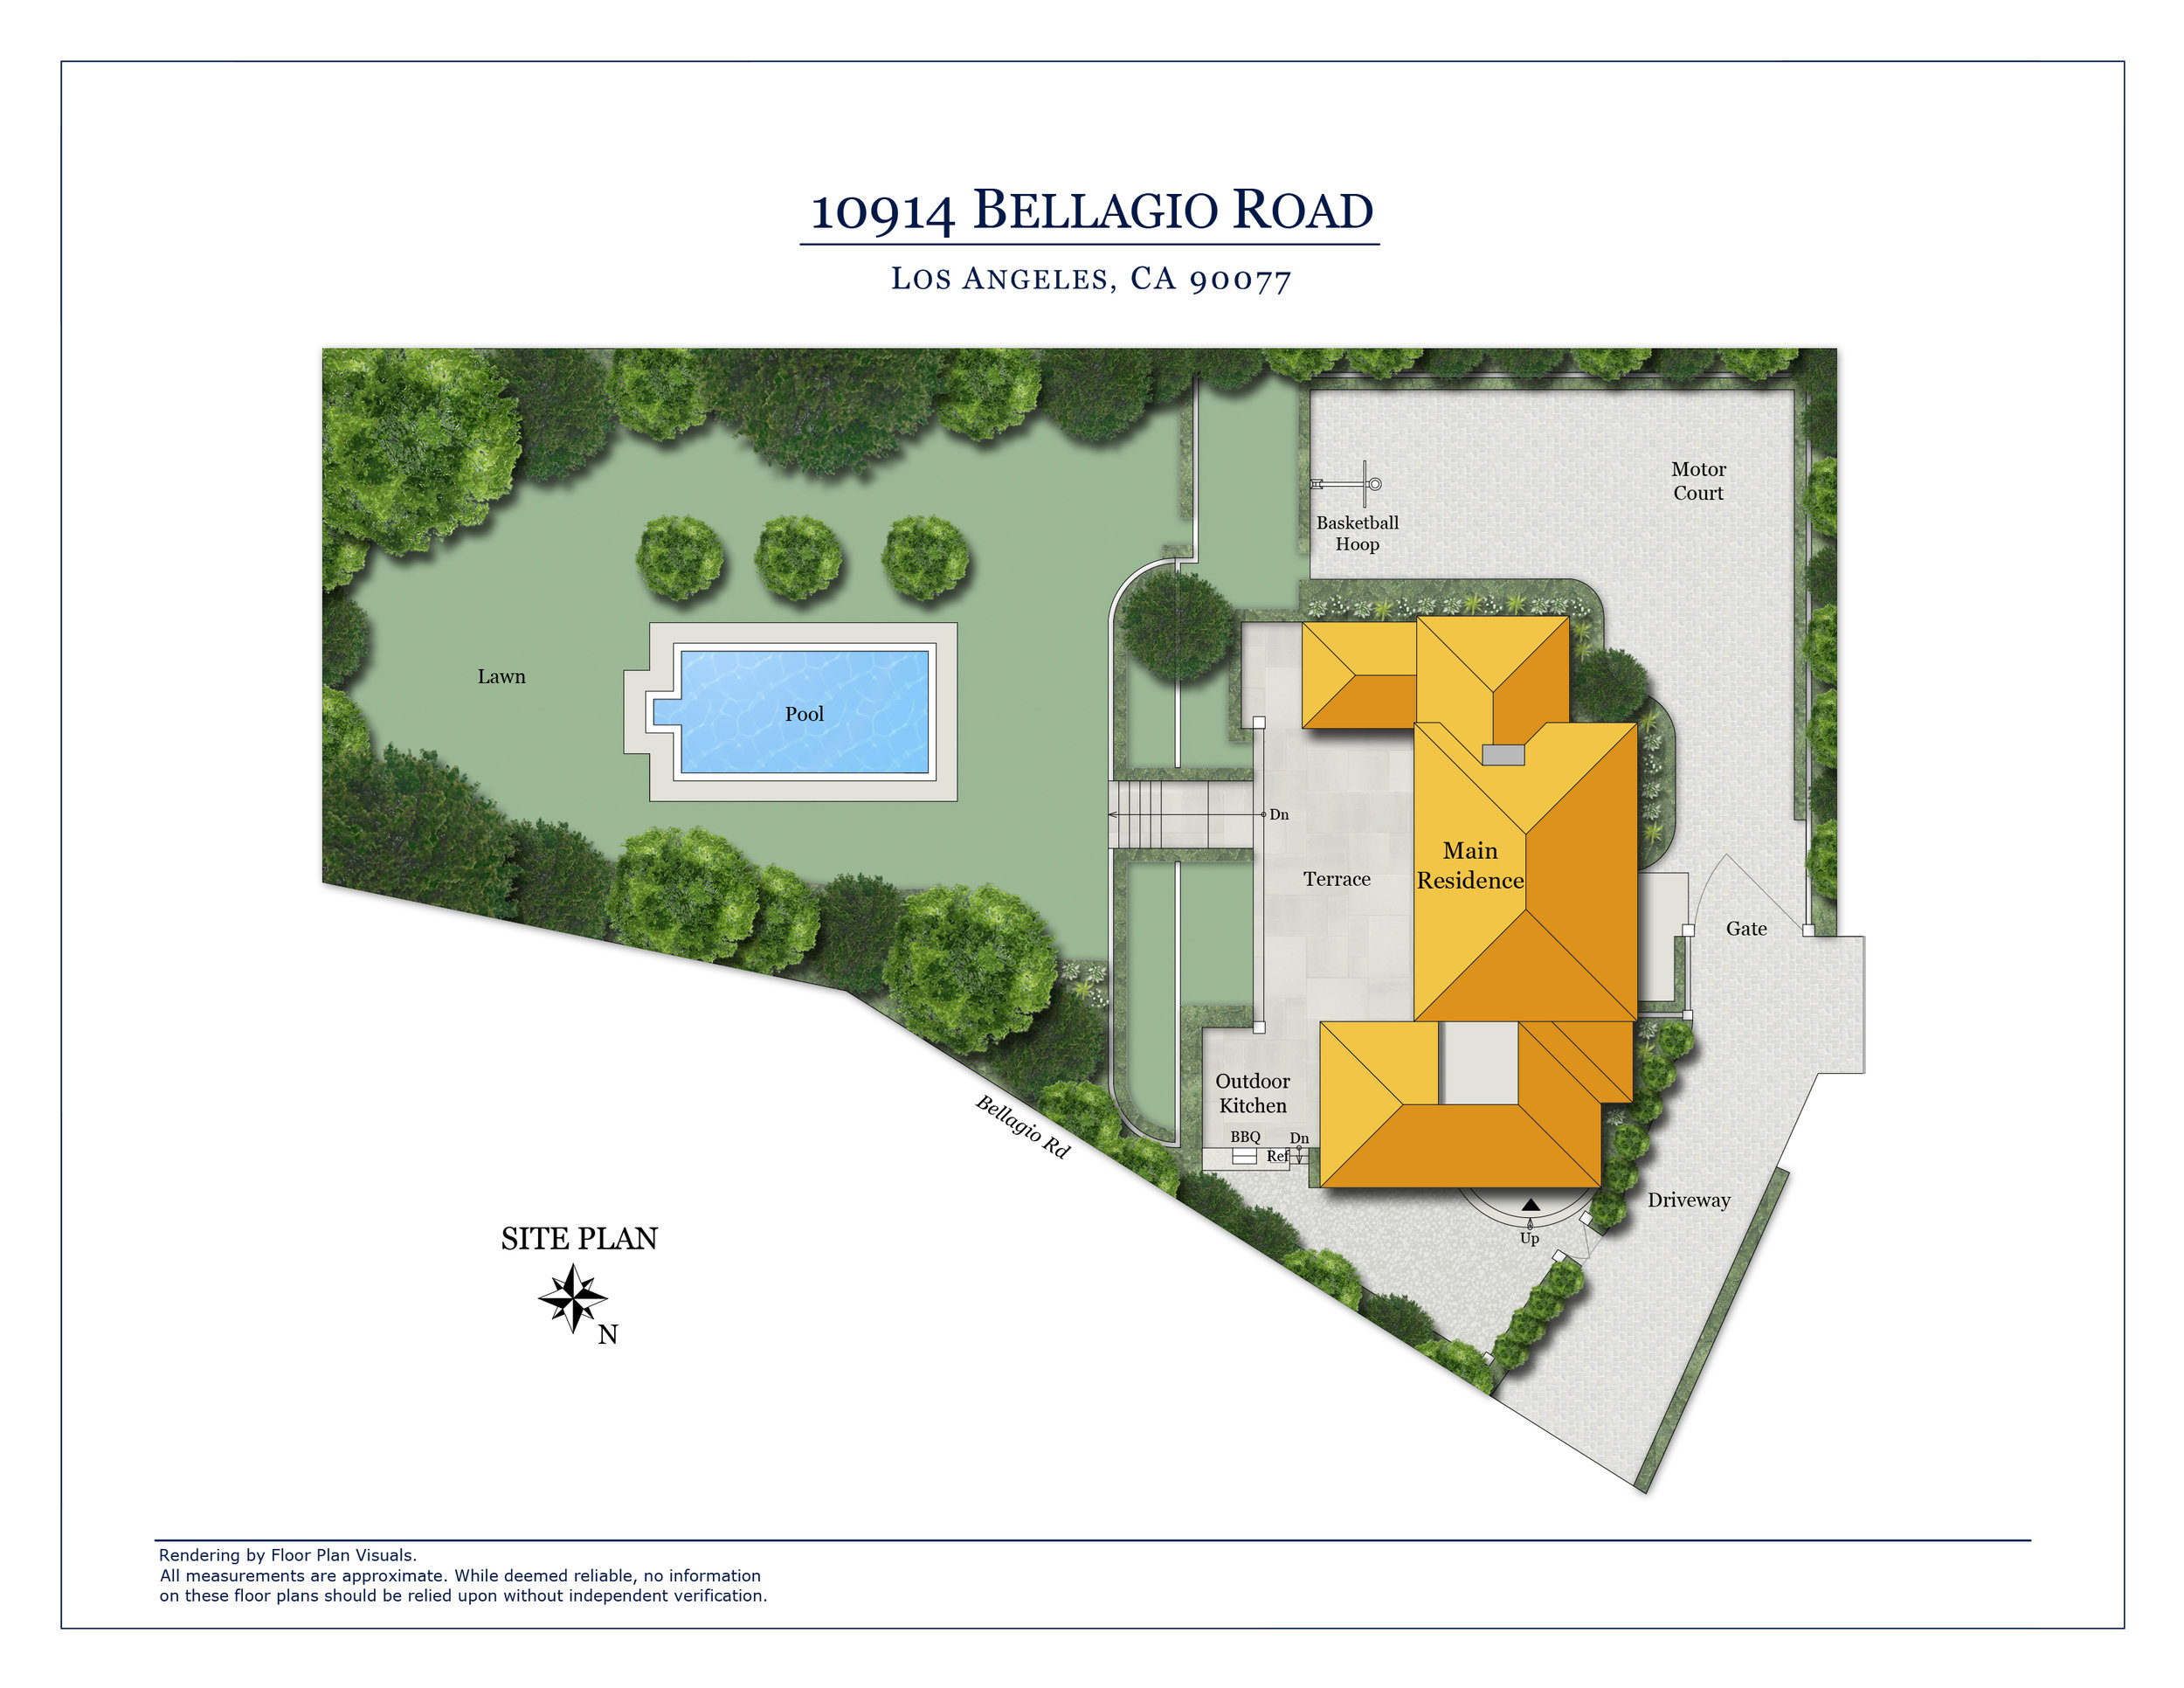 10914 Bellagio Road Site Plan.jpg